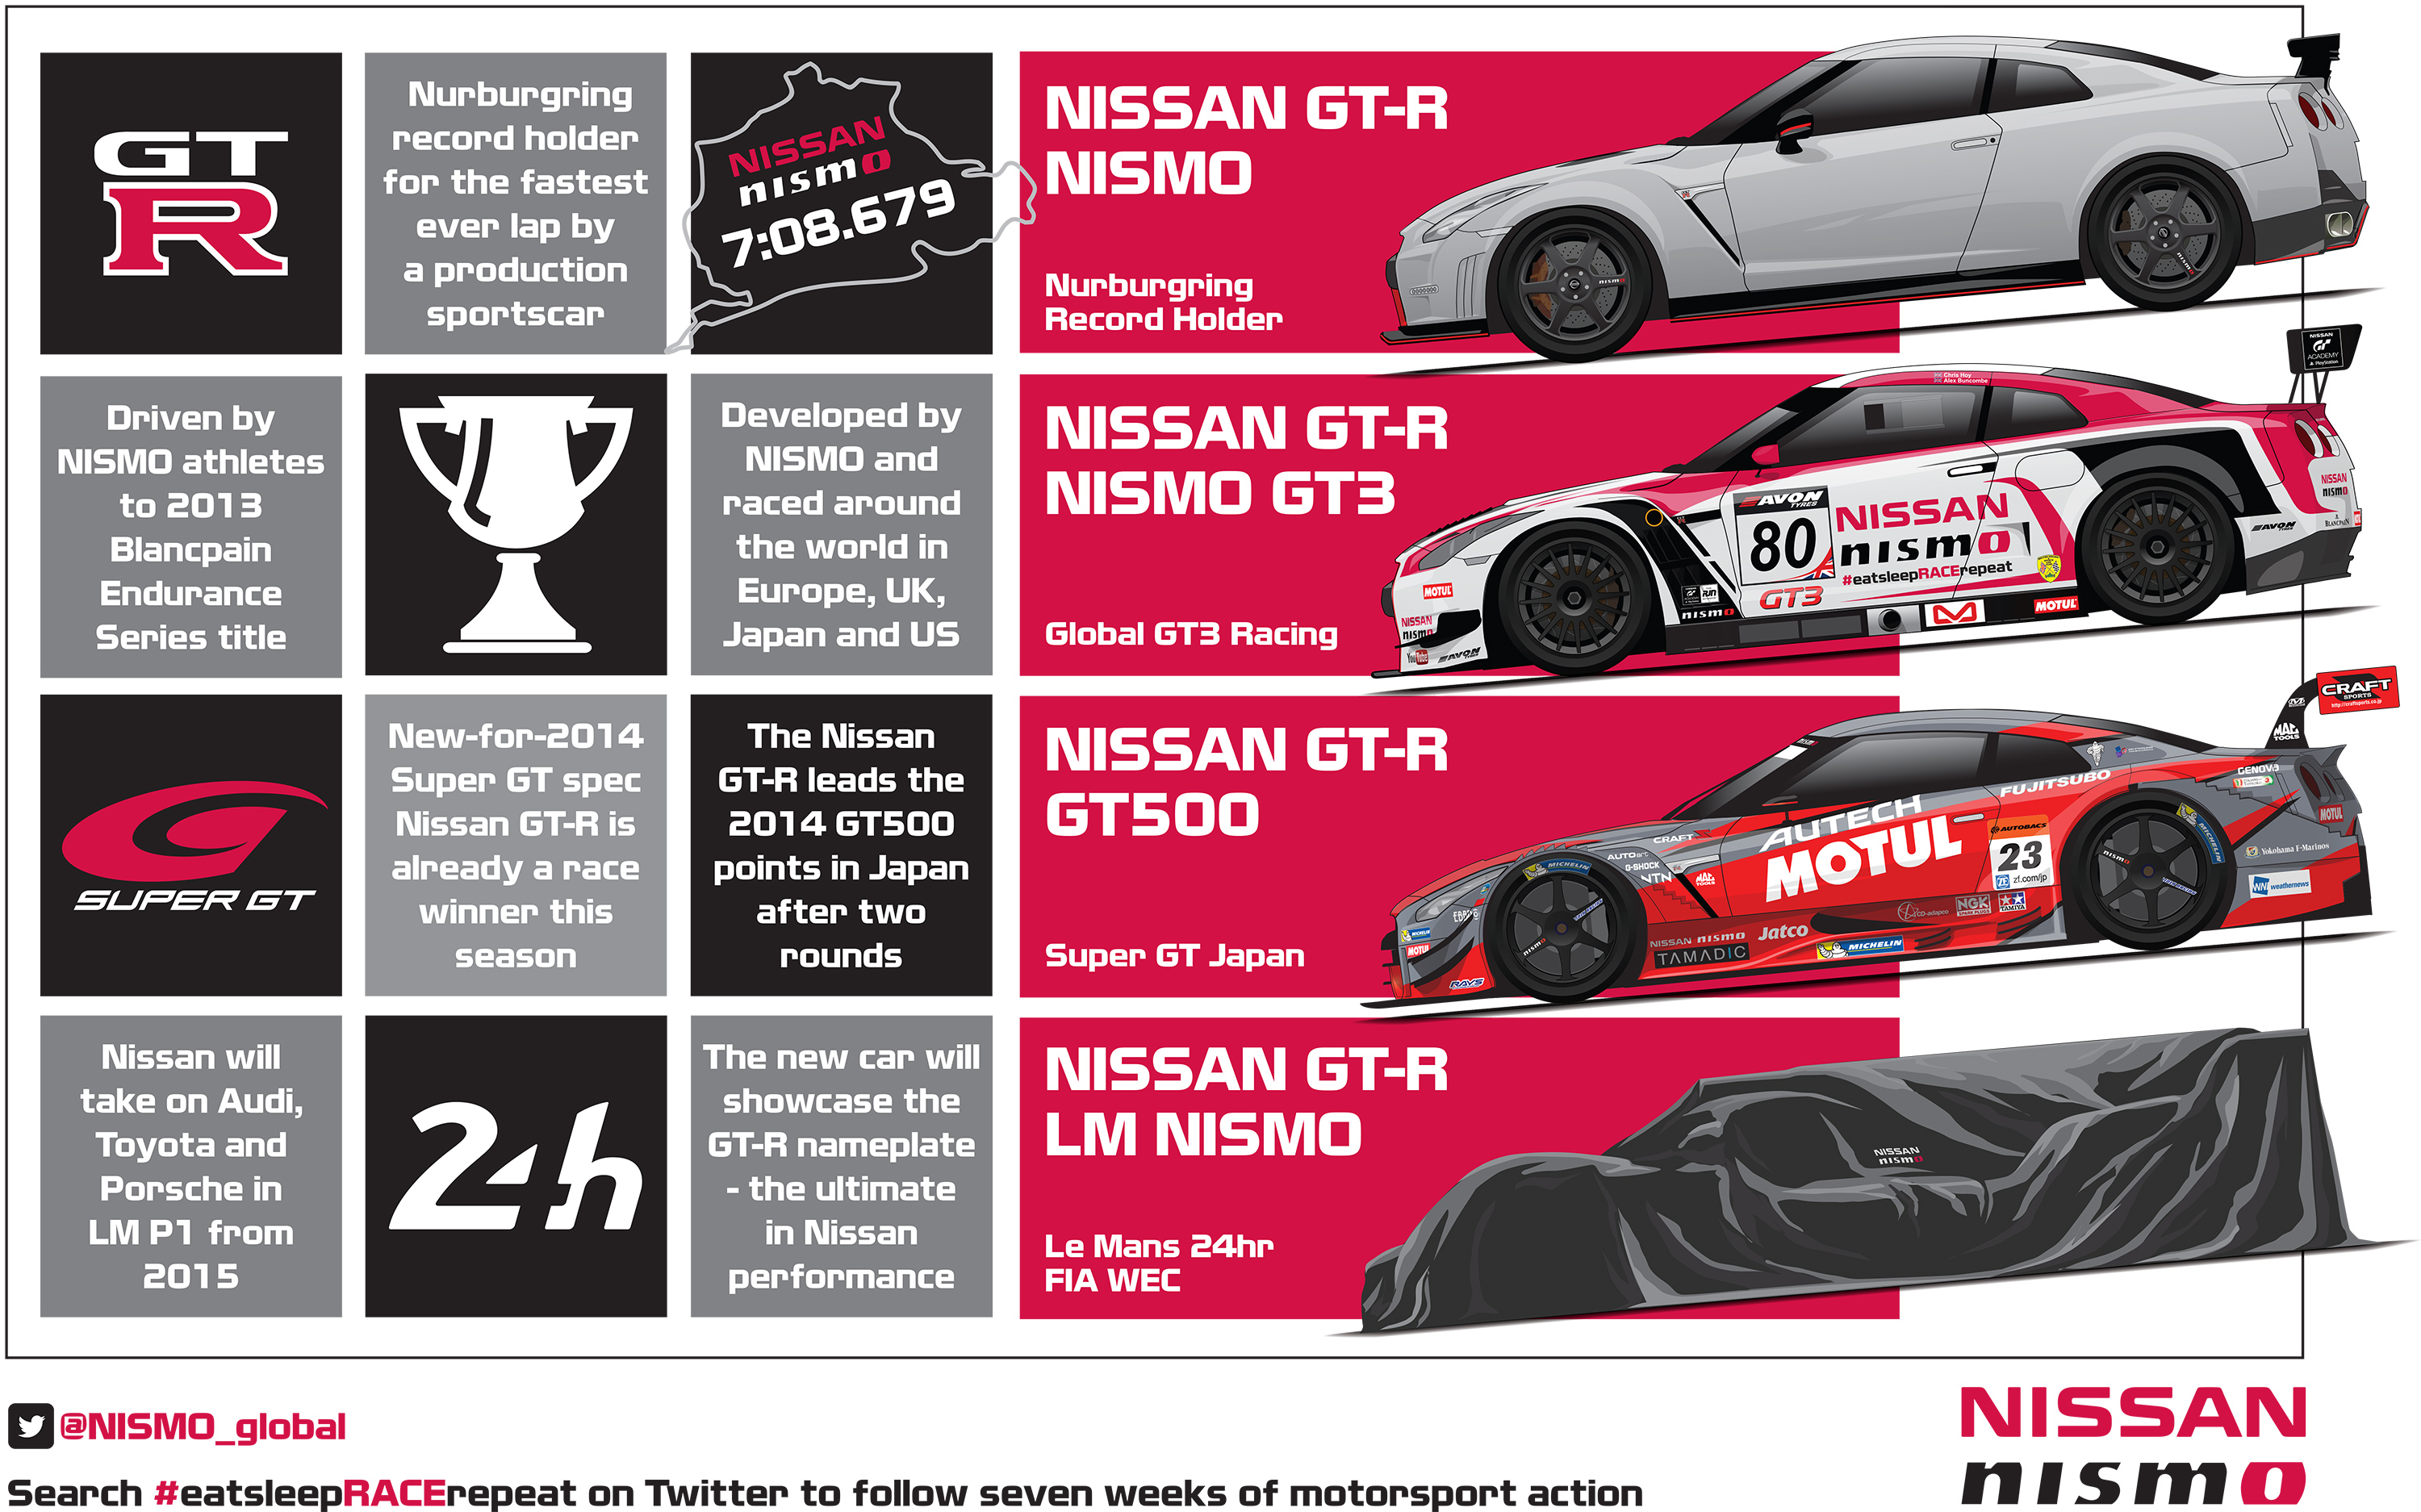 Nissan Le Mans and GTR LM NISMO creative assets  Andy Blackmore